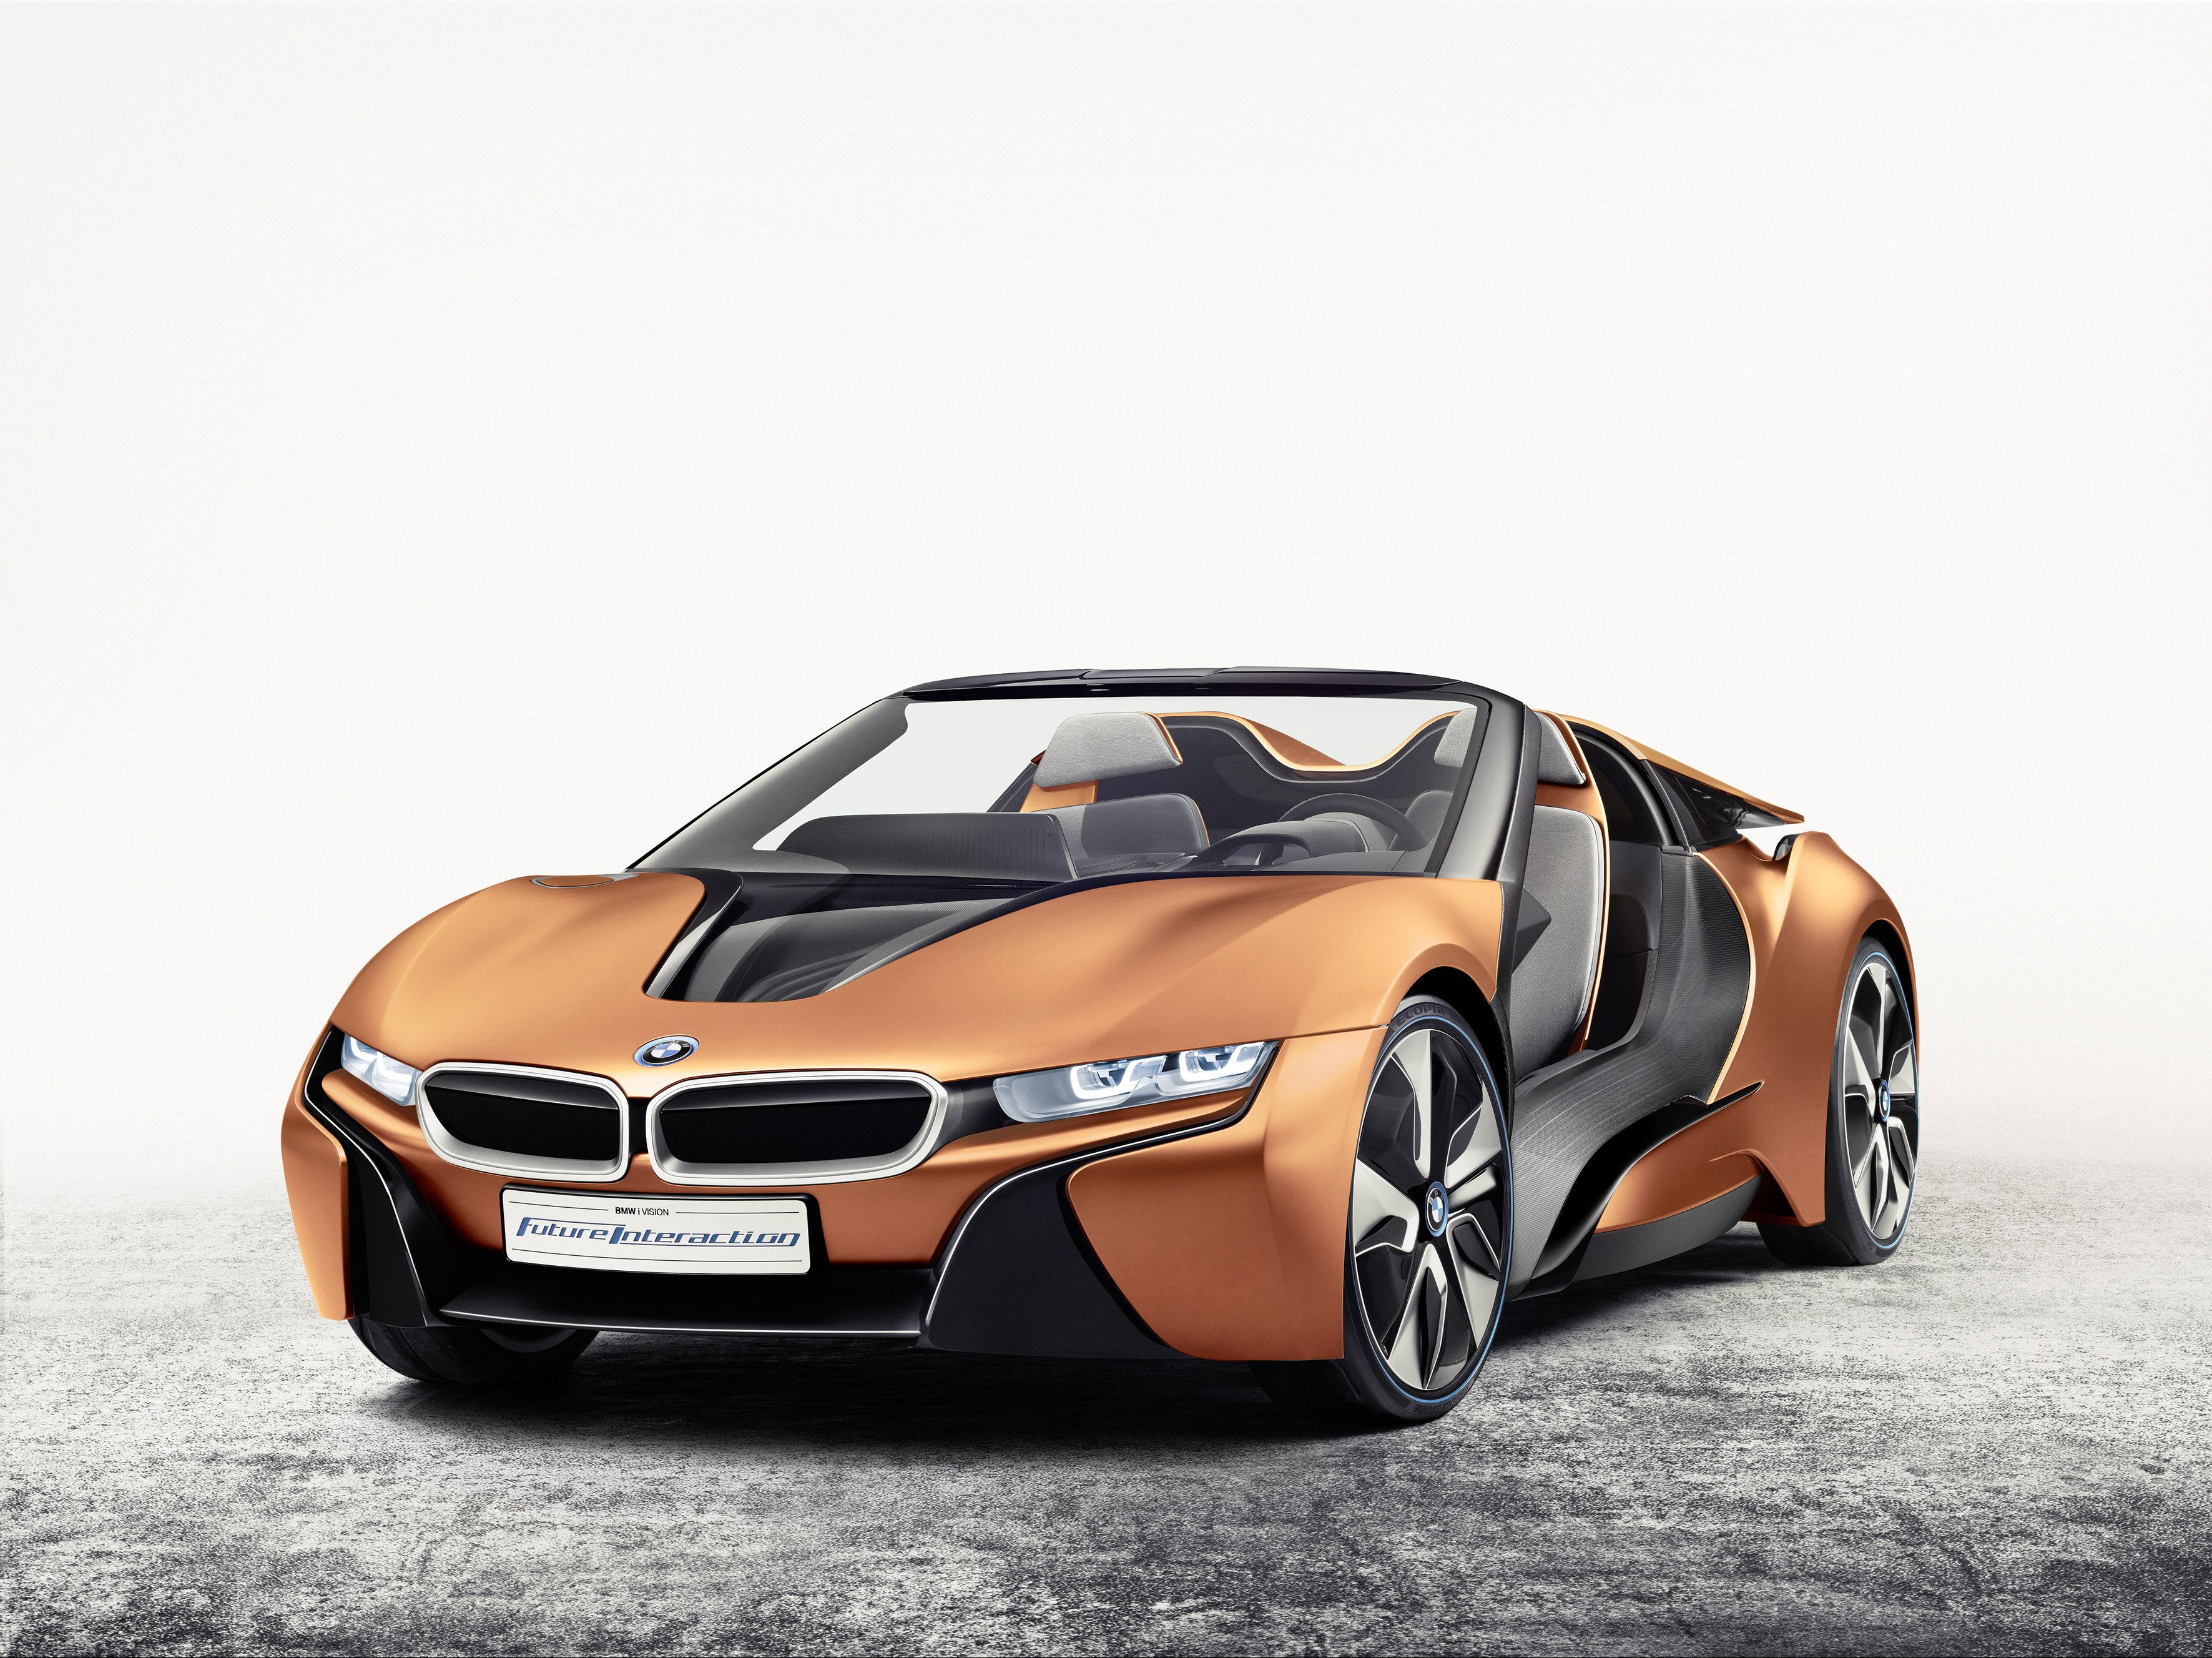 Bmw Unveils Tech Packed I8 Spyder Concept At Ces 2016 Bmw I8